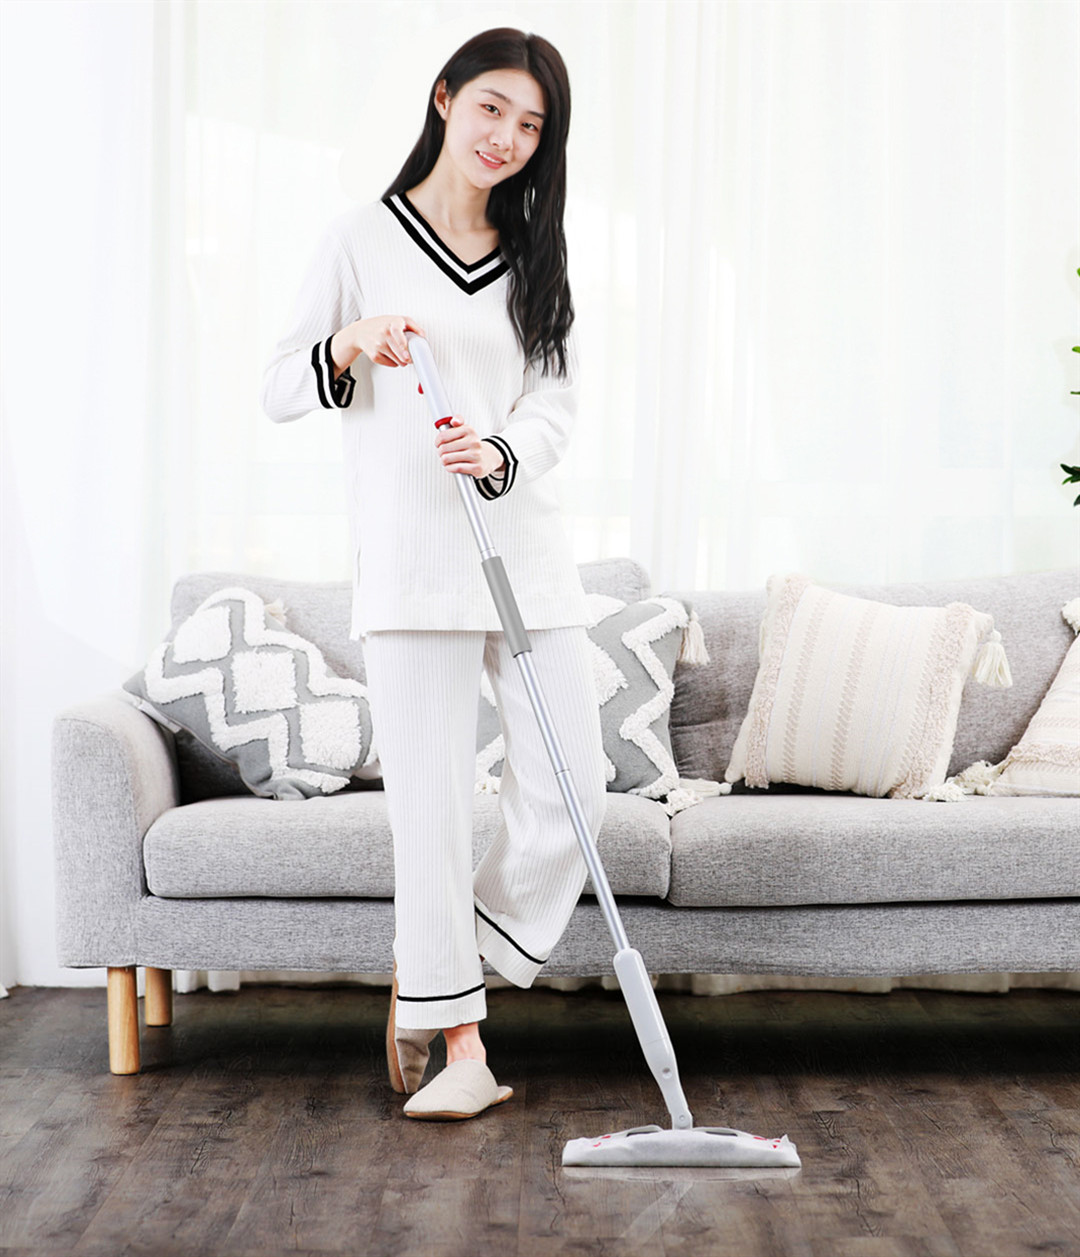 YIJIE 2 In 1 Spray Floor Mop 360° Universal Rotating Home Cleaning Tools Non-woven Fabric from Xiaomi Youpin